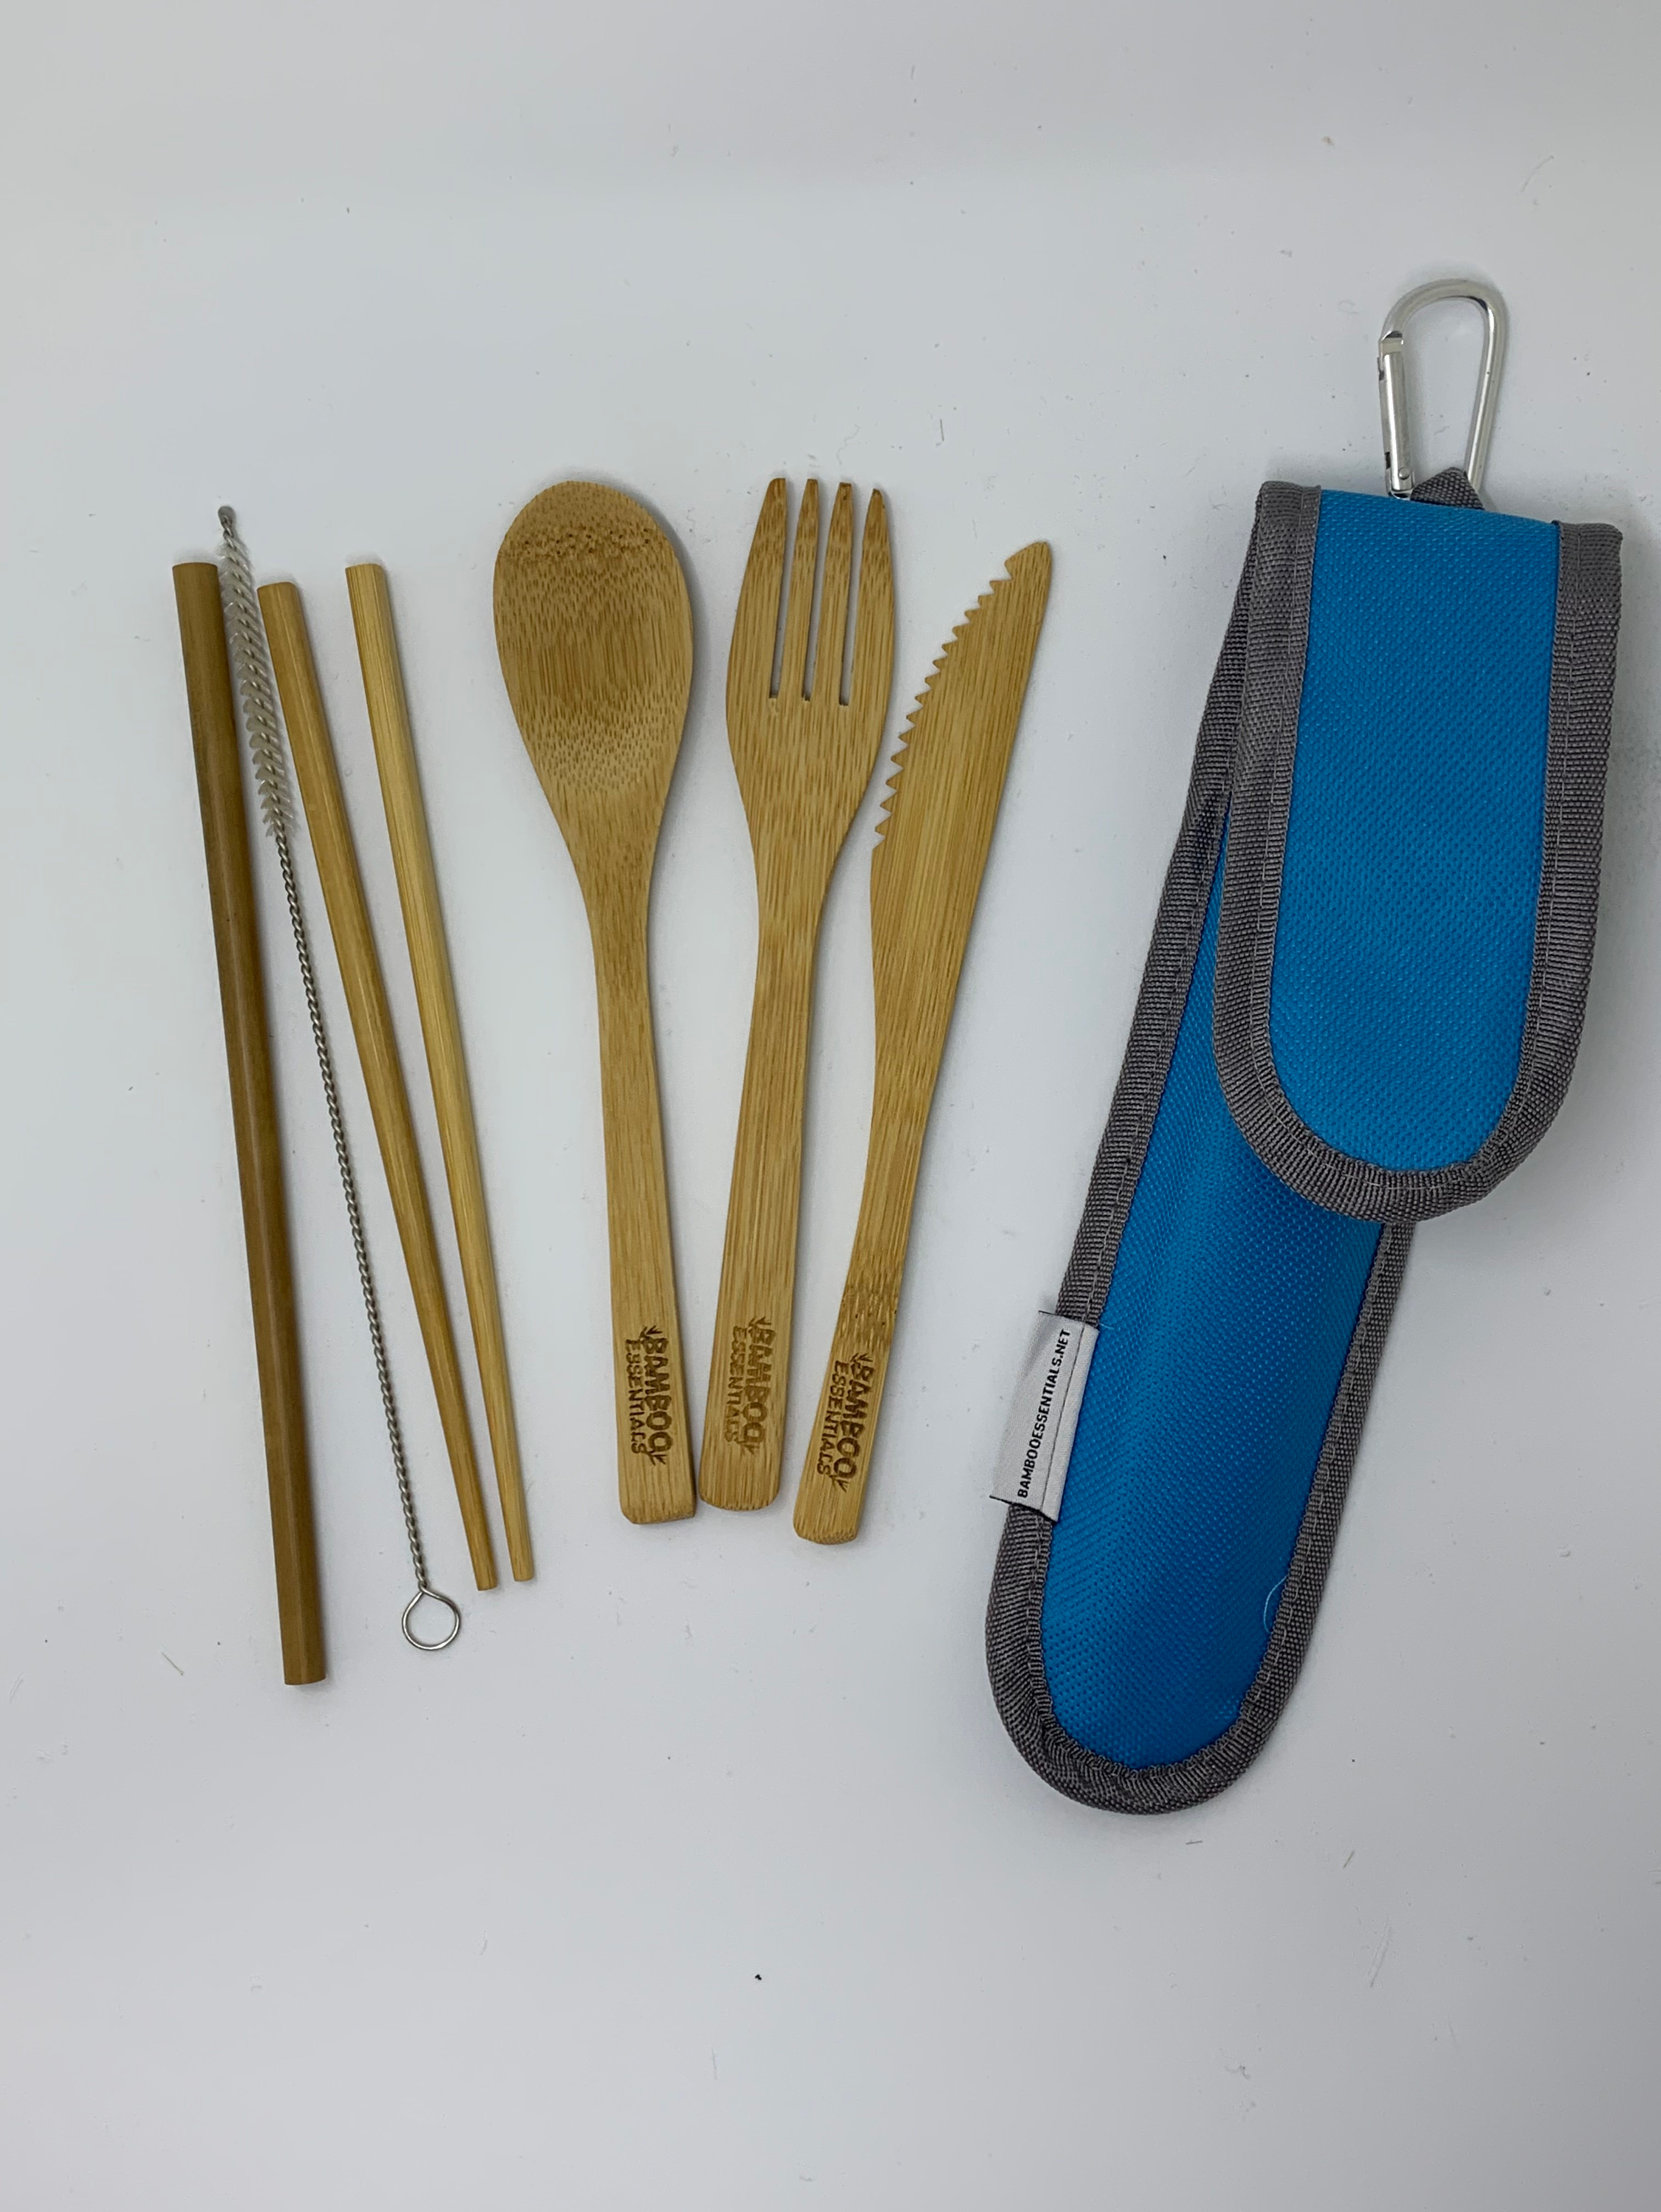 Bamboo travel utensils to help you travel sustainably